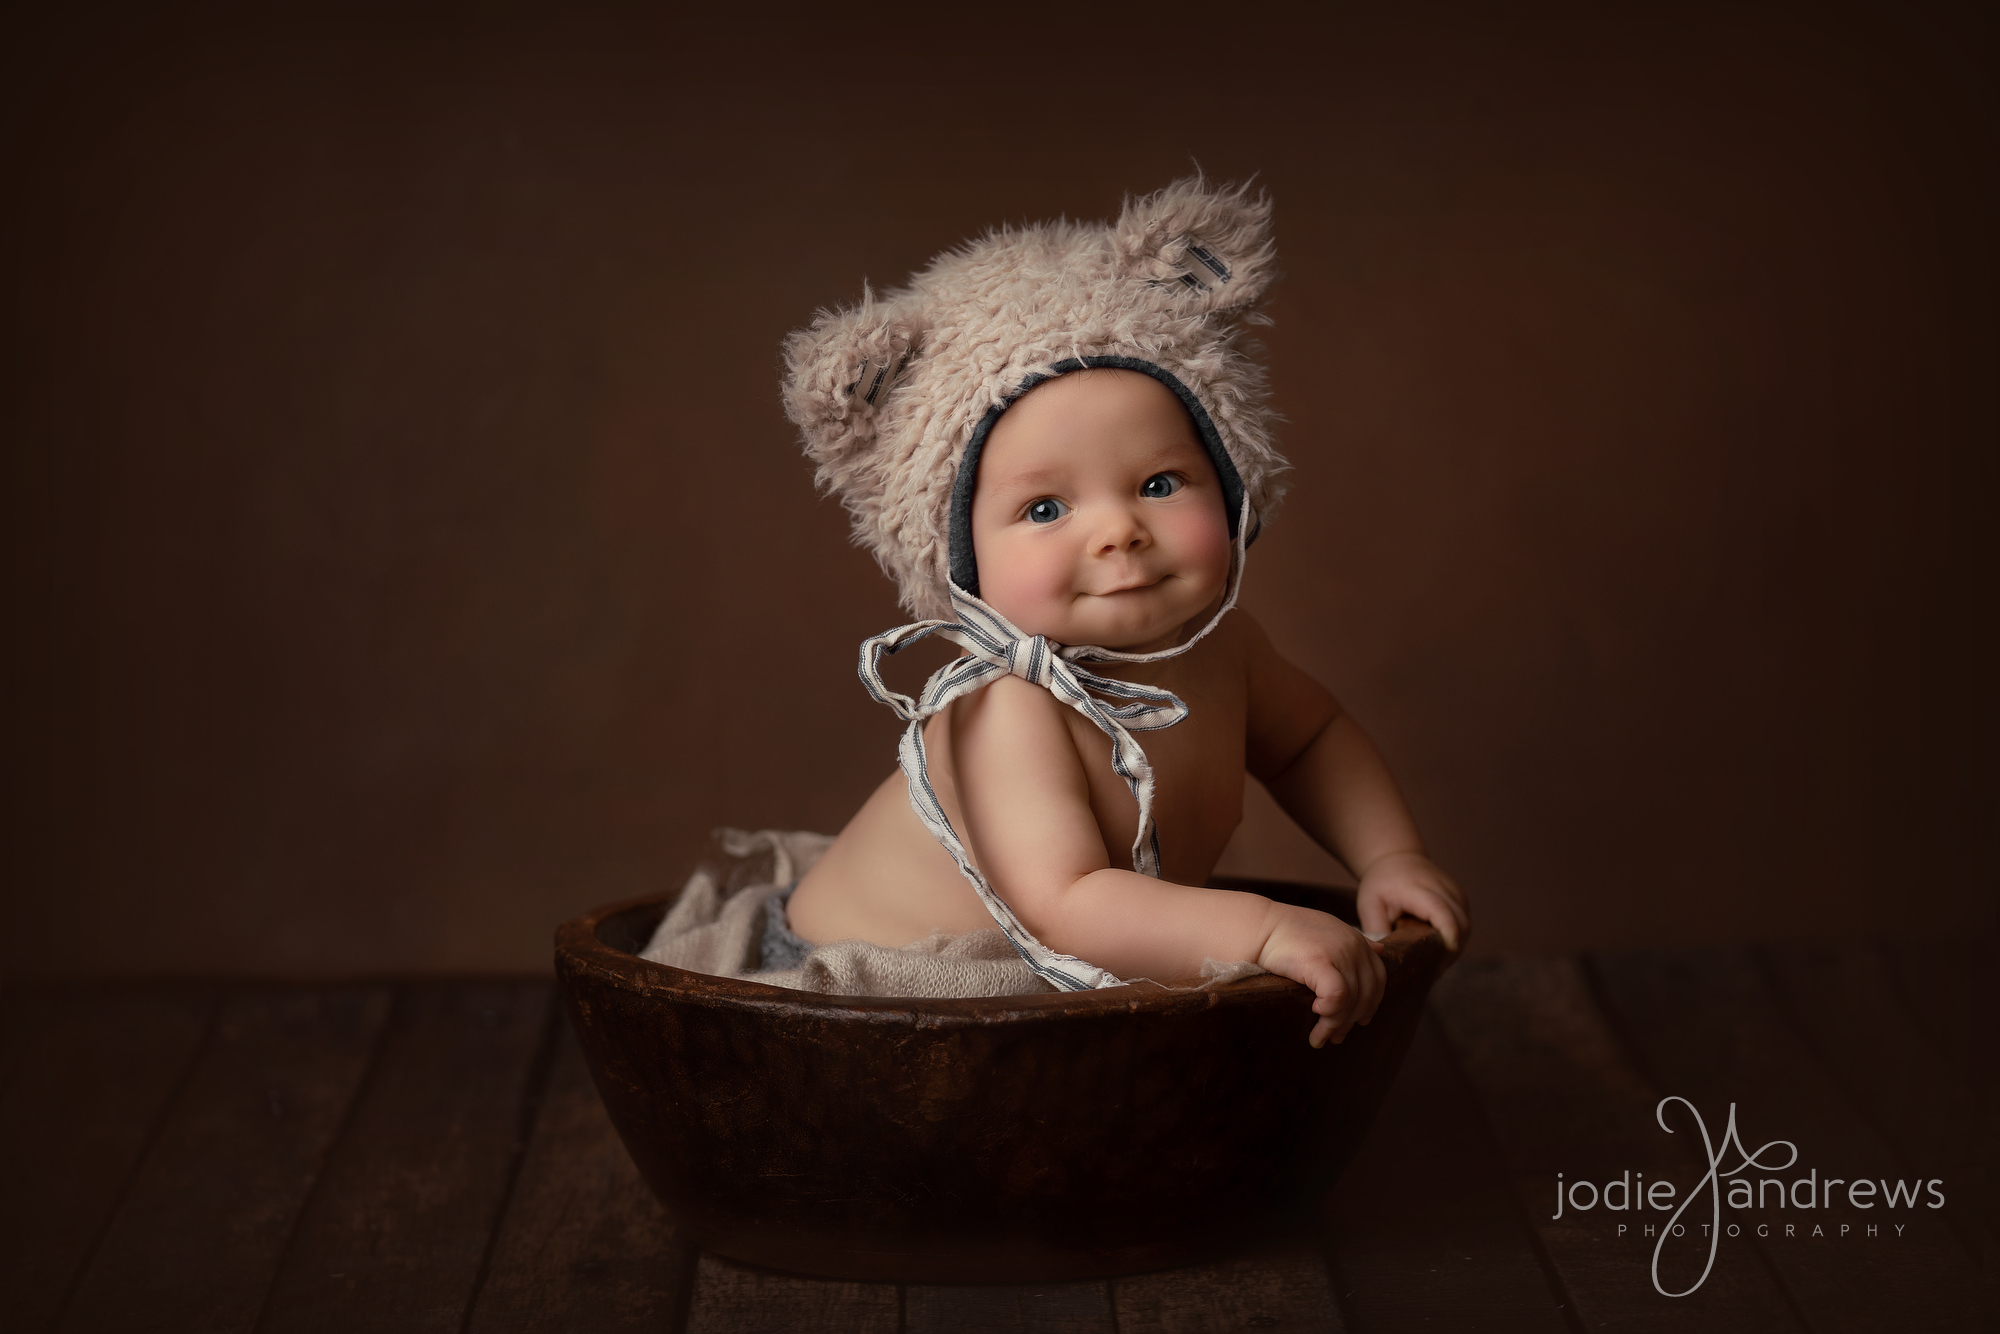 Cute Baby Boy sitting in bowl on brown background with bear hat on